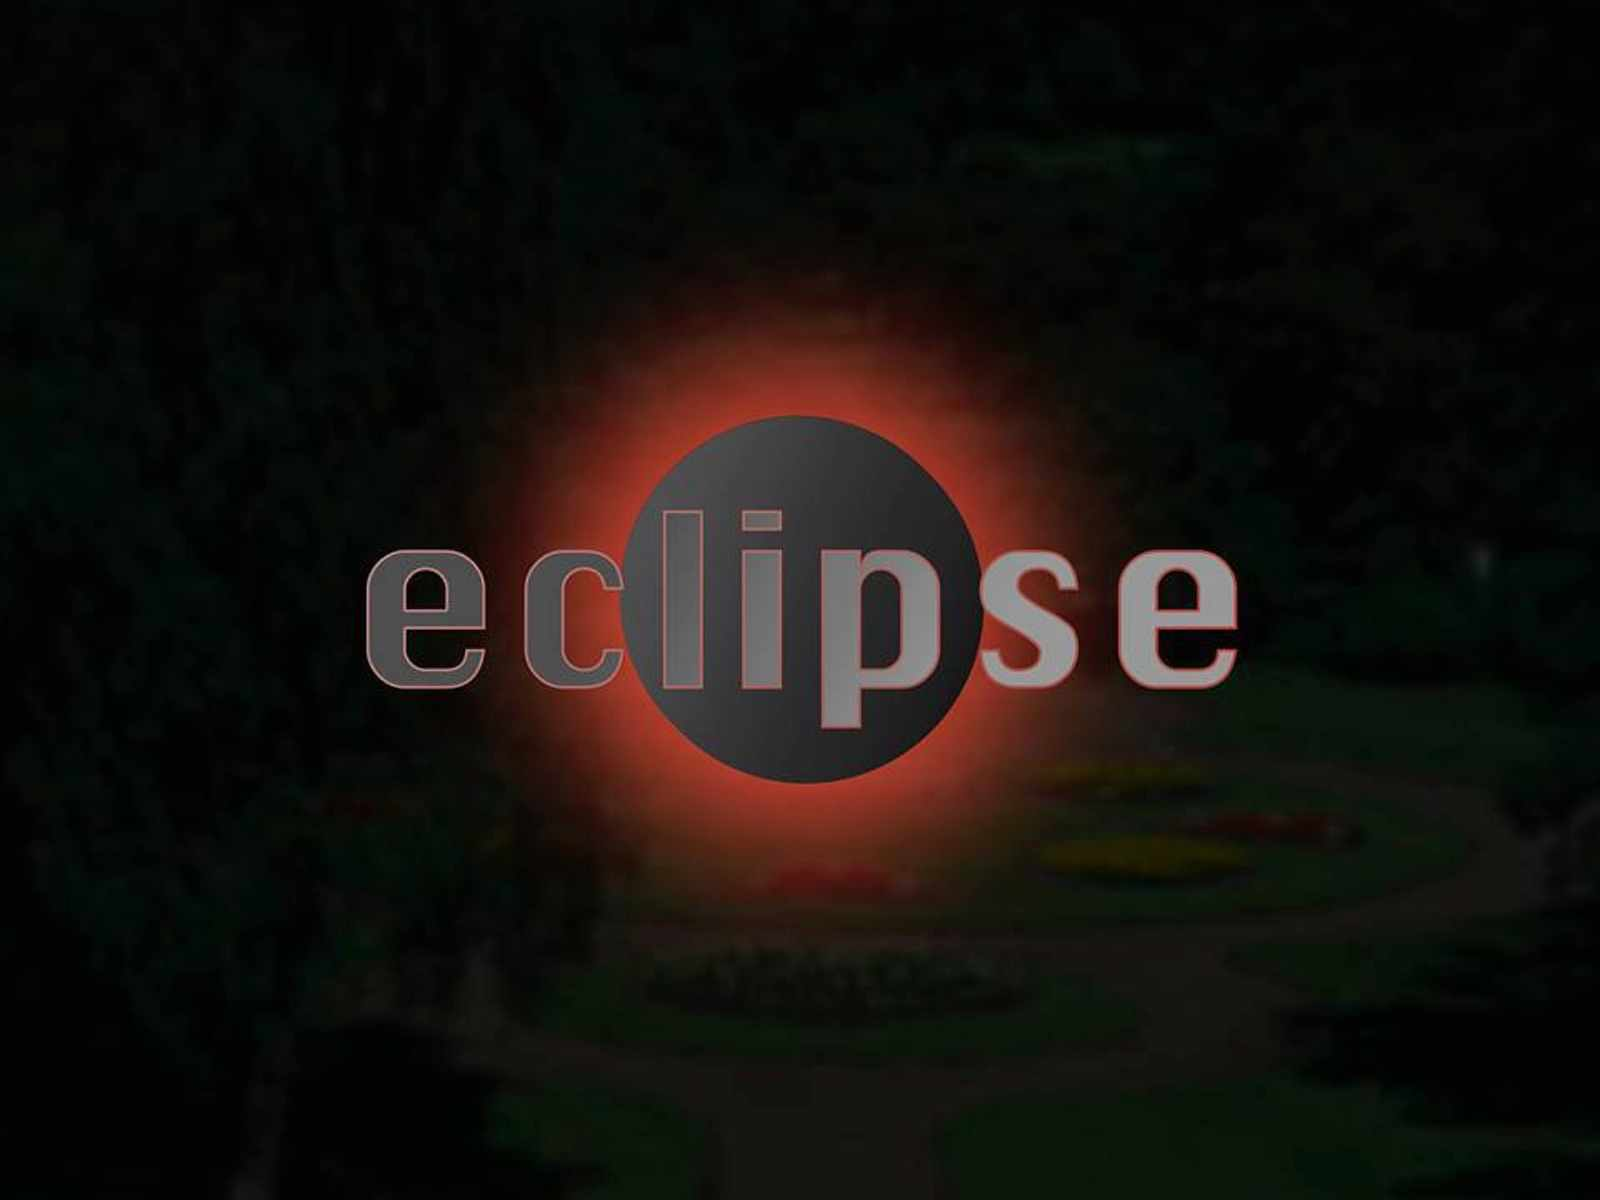 Our Transmedia Campaign: Eclipse